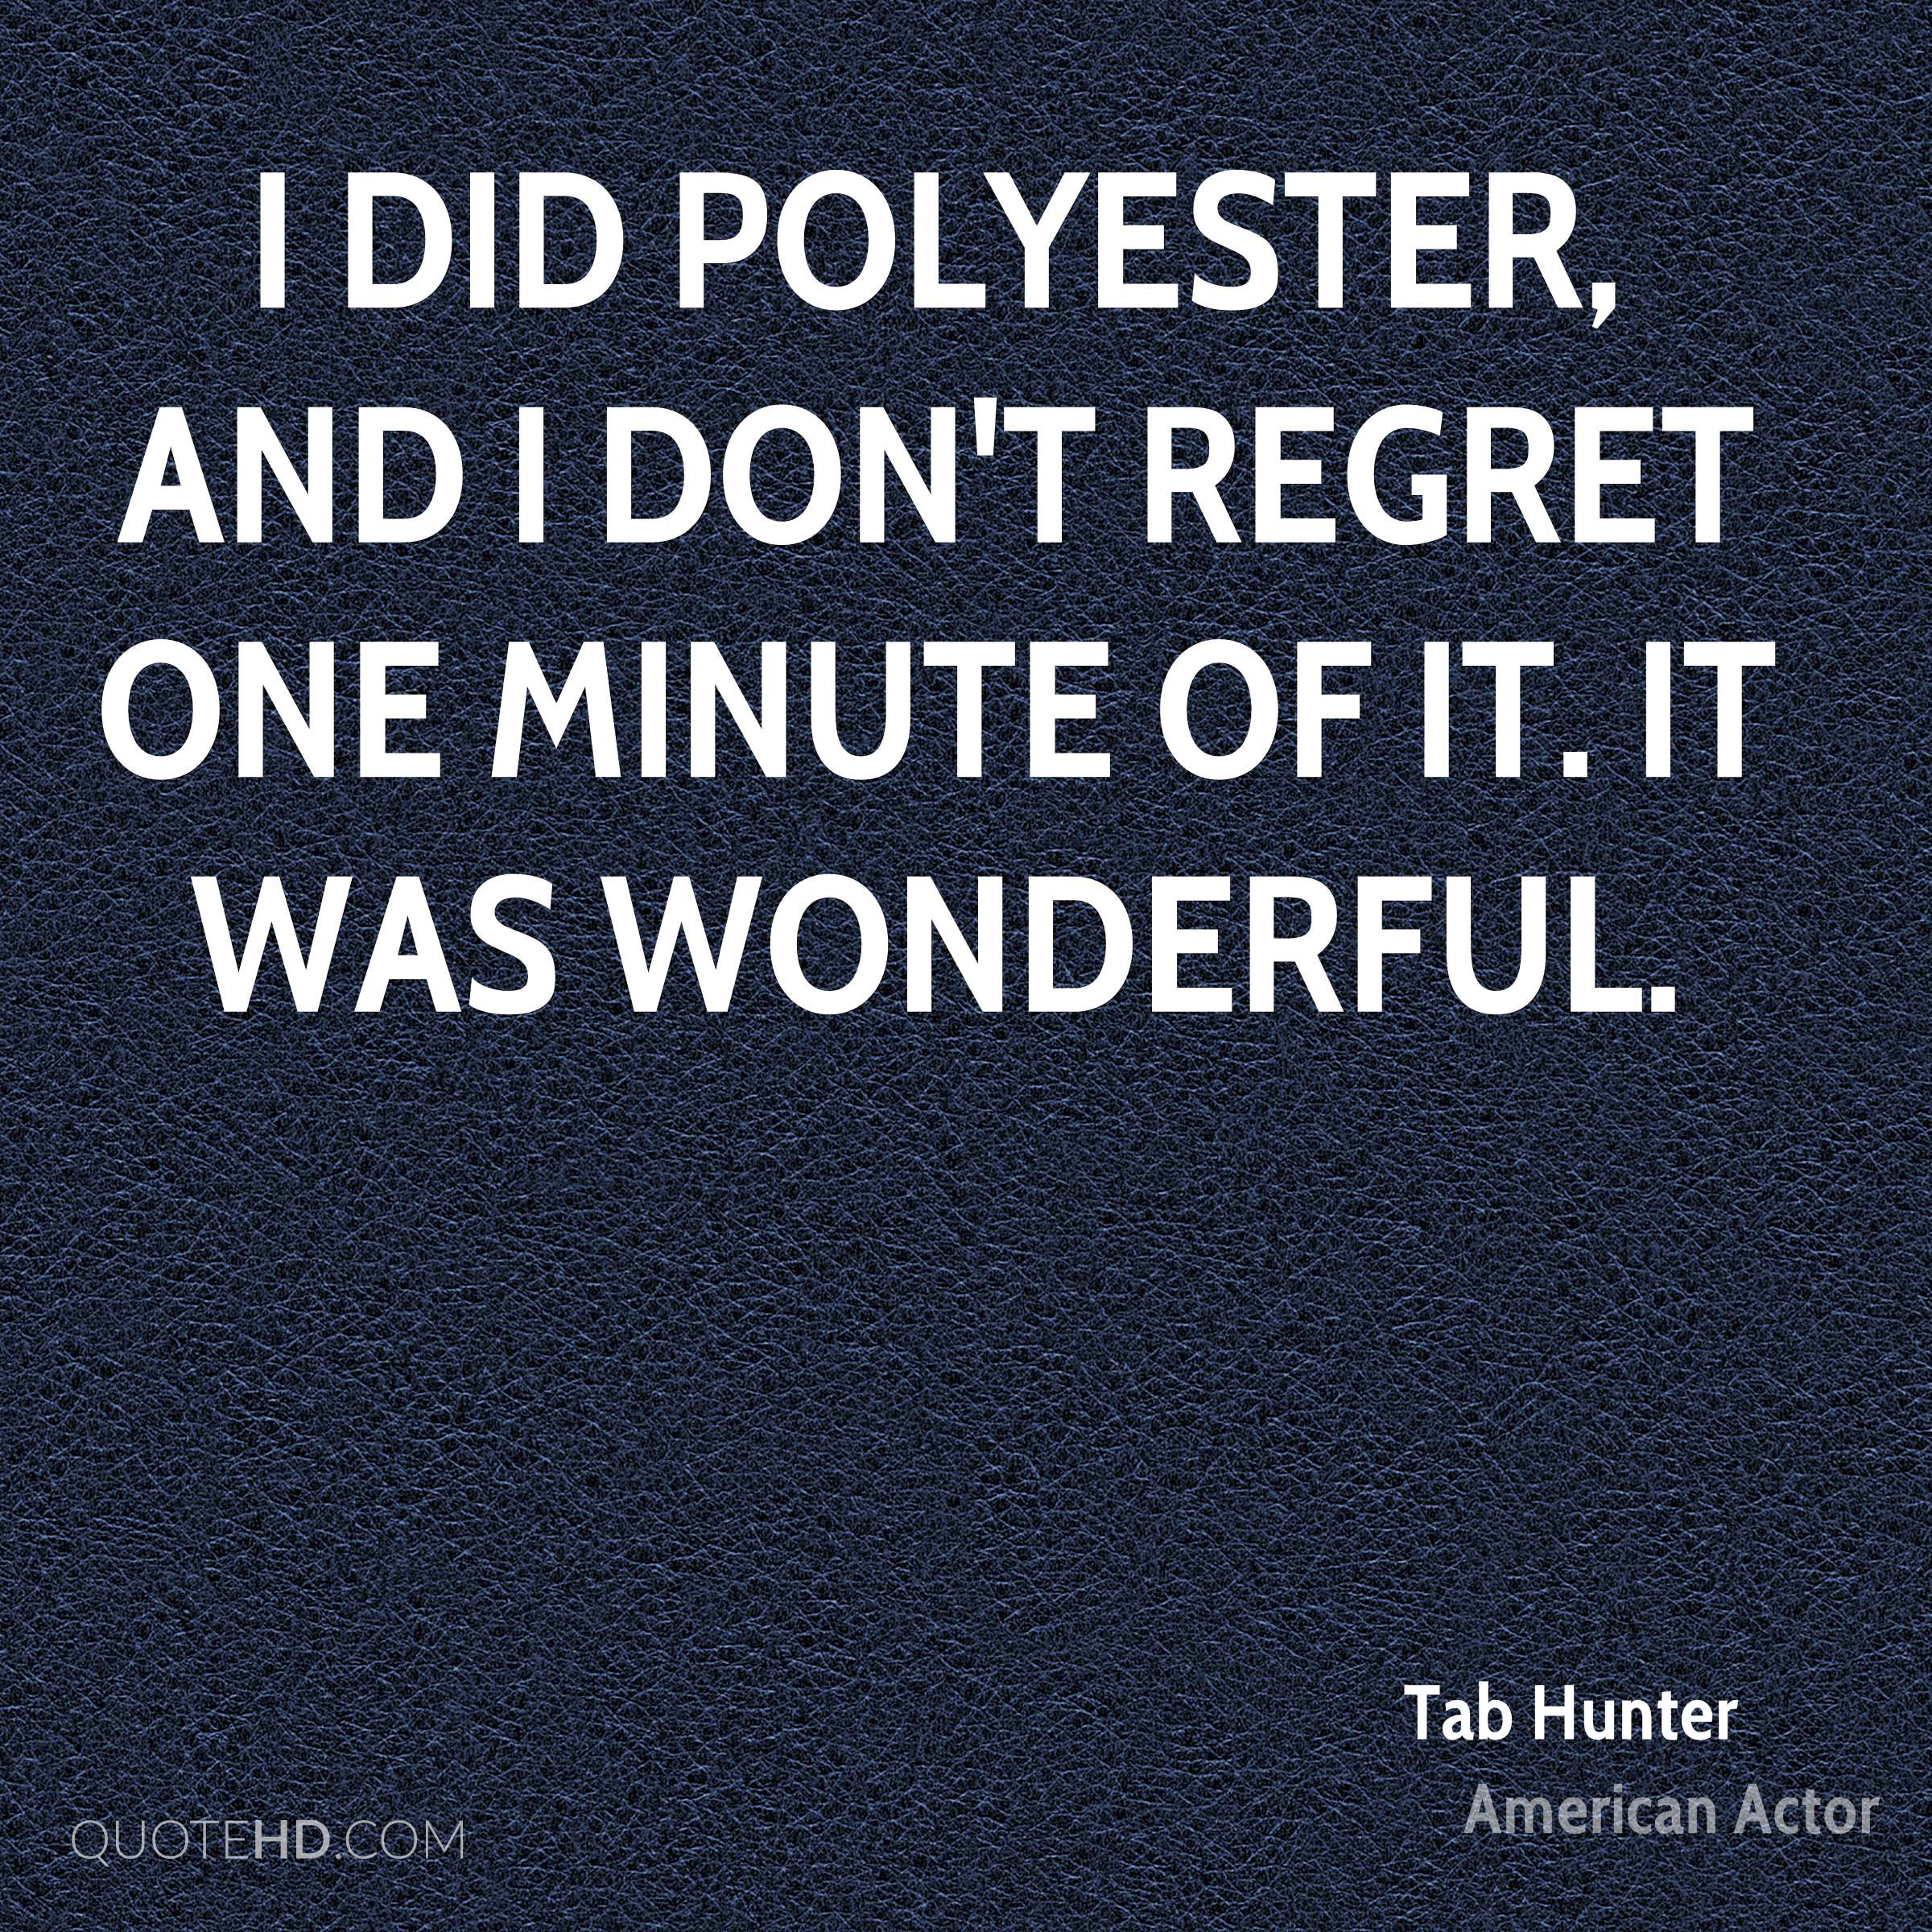 I did Polyester, and I don't regret one minute of it. It was wonderful.